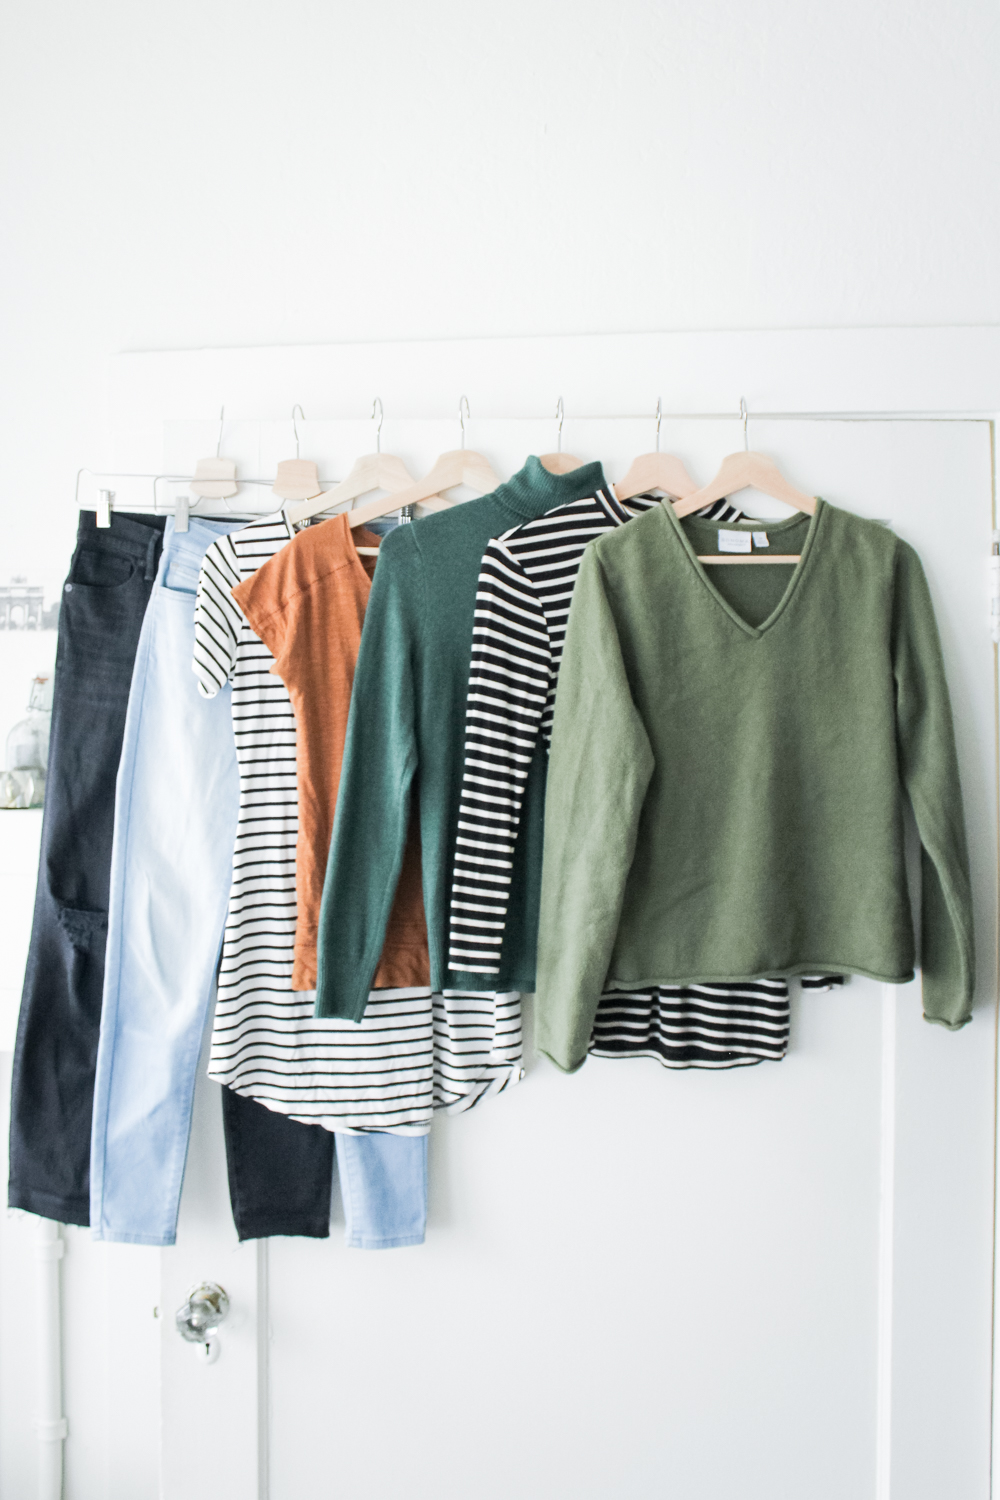 casual spring capsule wardrobe pieces / spring 10x10 / unfancy remix / tintedgreen